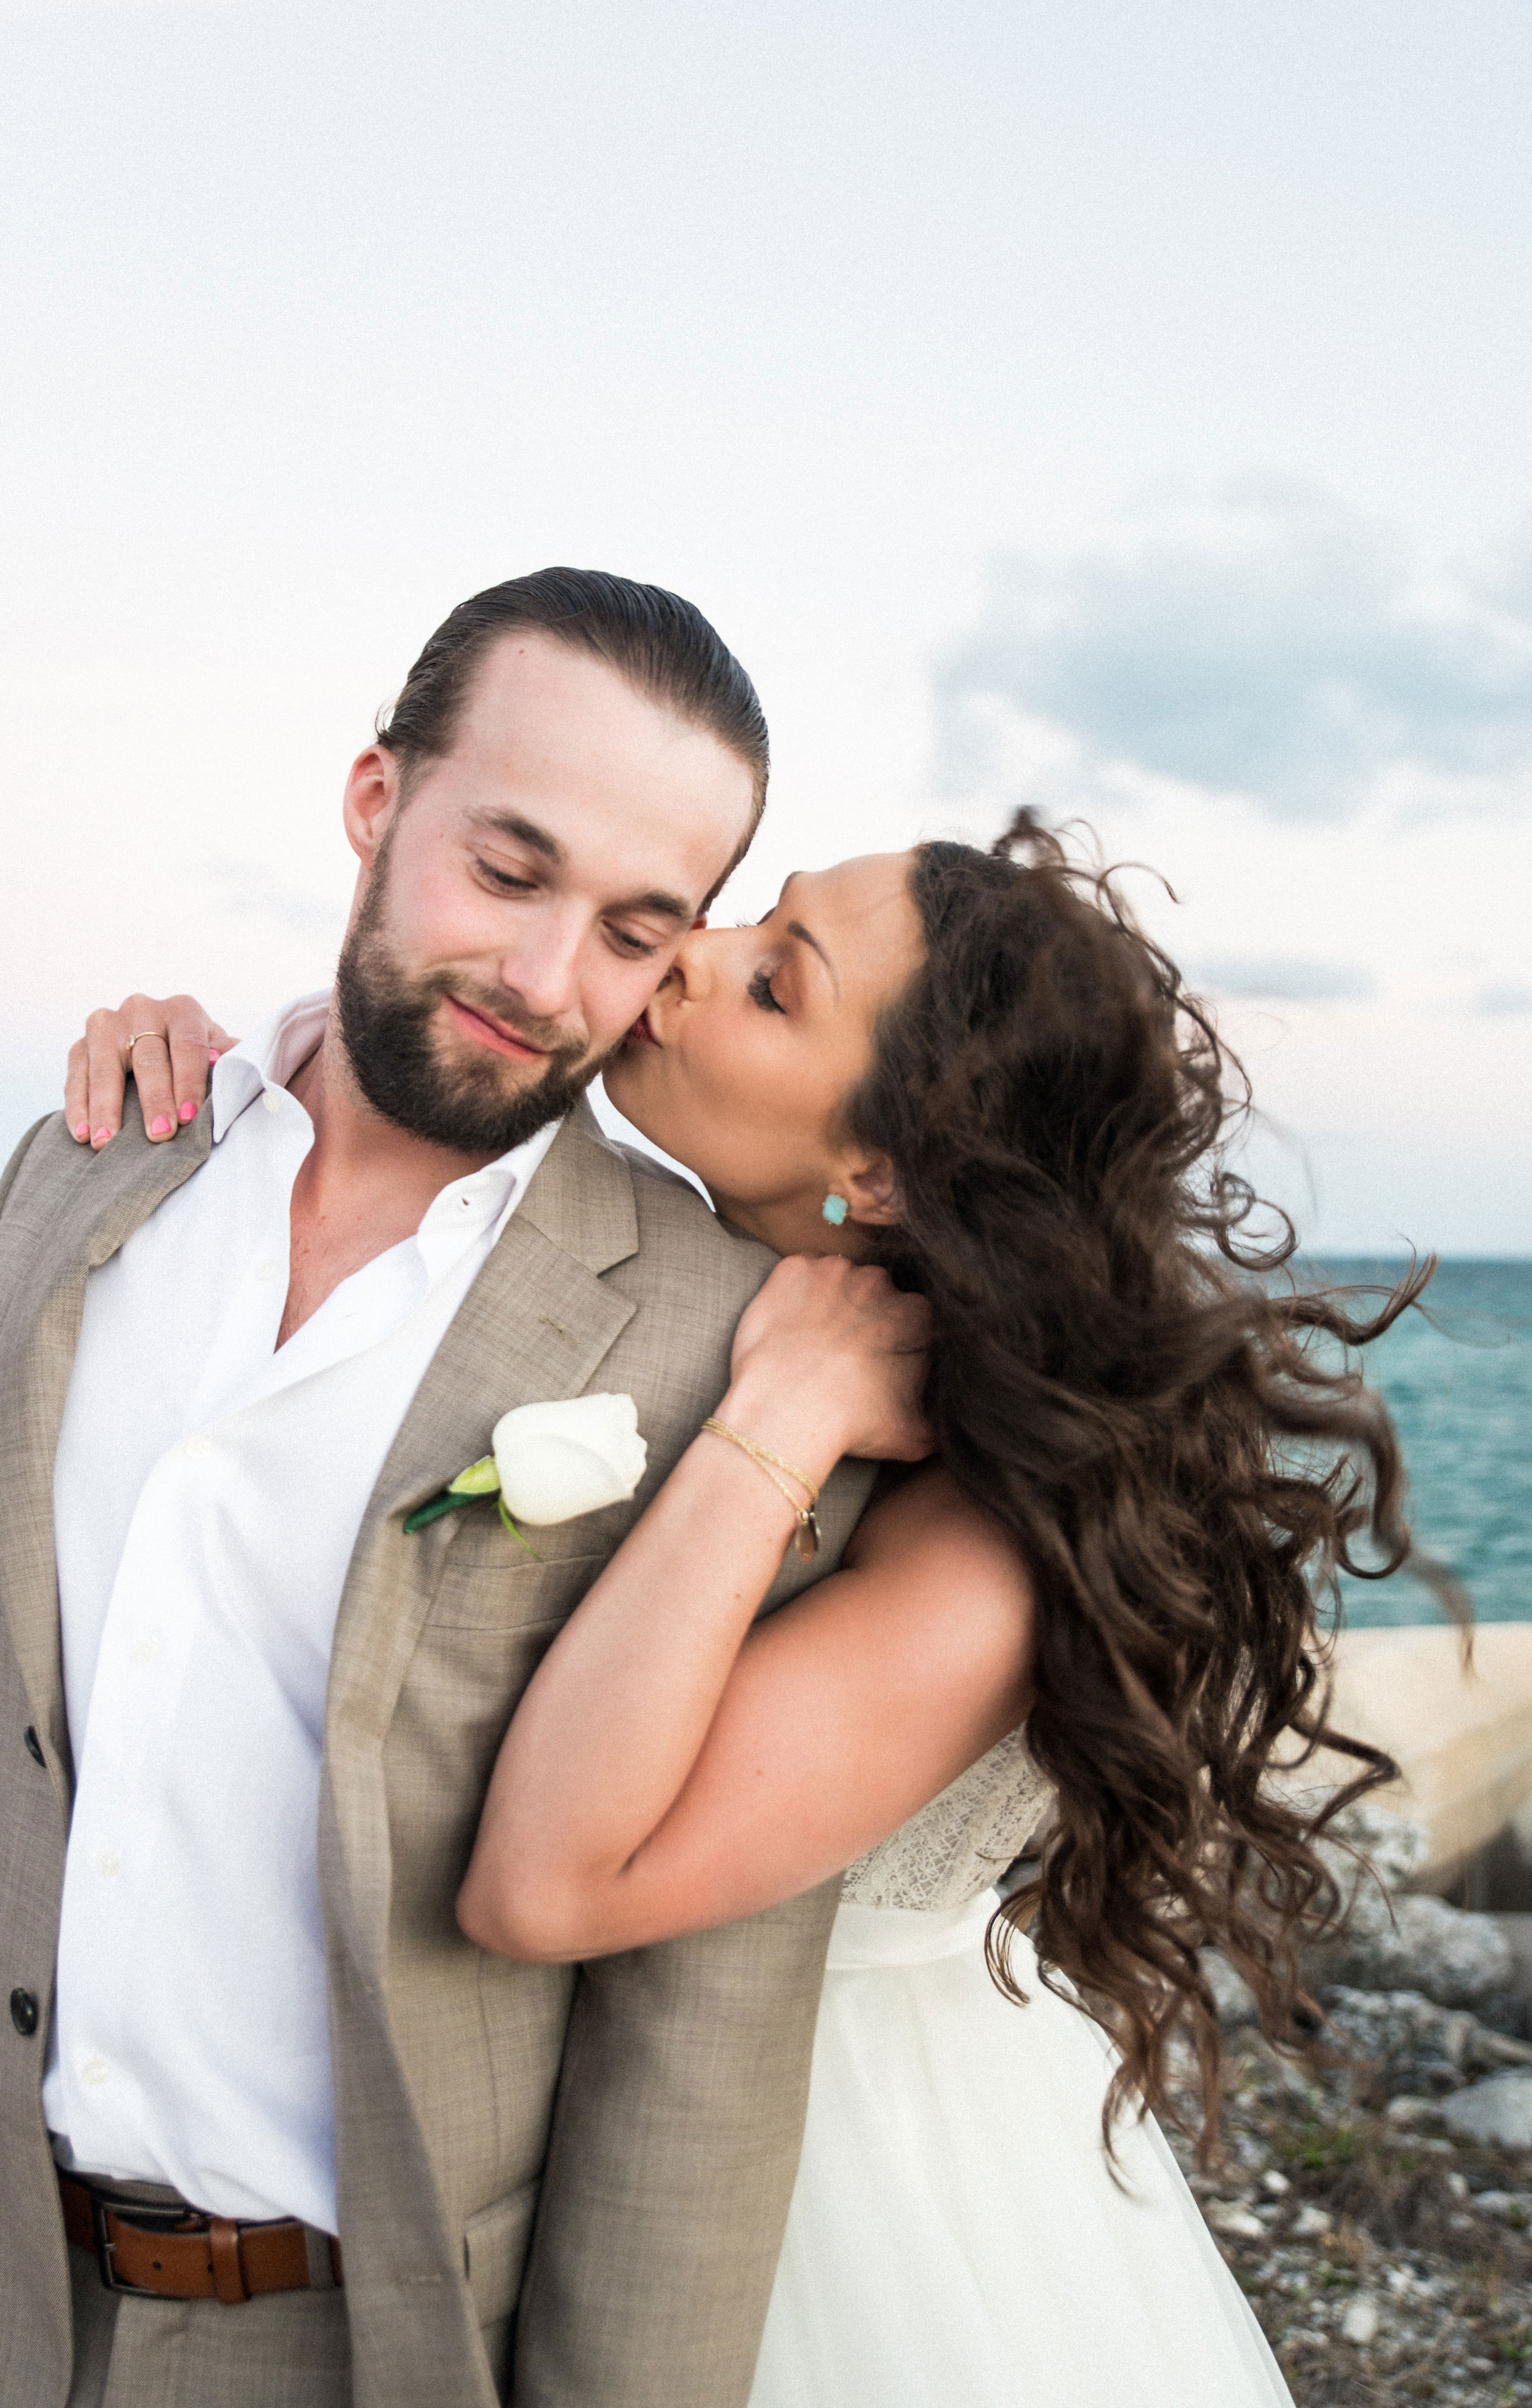 Destination wedding in Playa Mujeres Mexico.  Wedding on the beach wearing bridal separates.